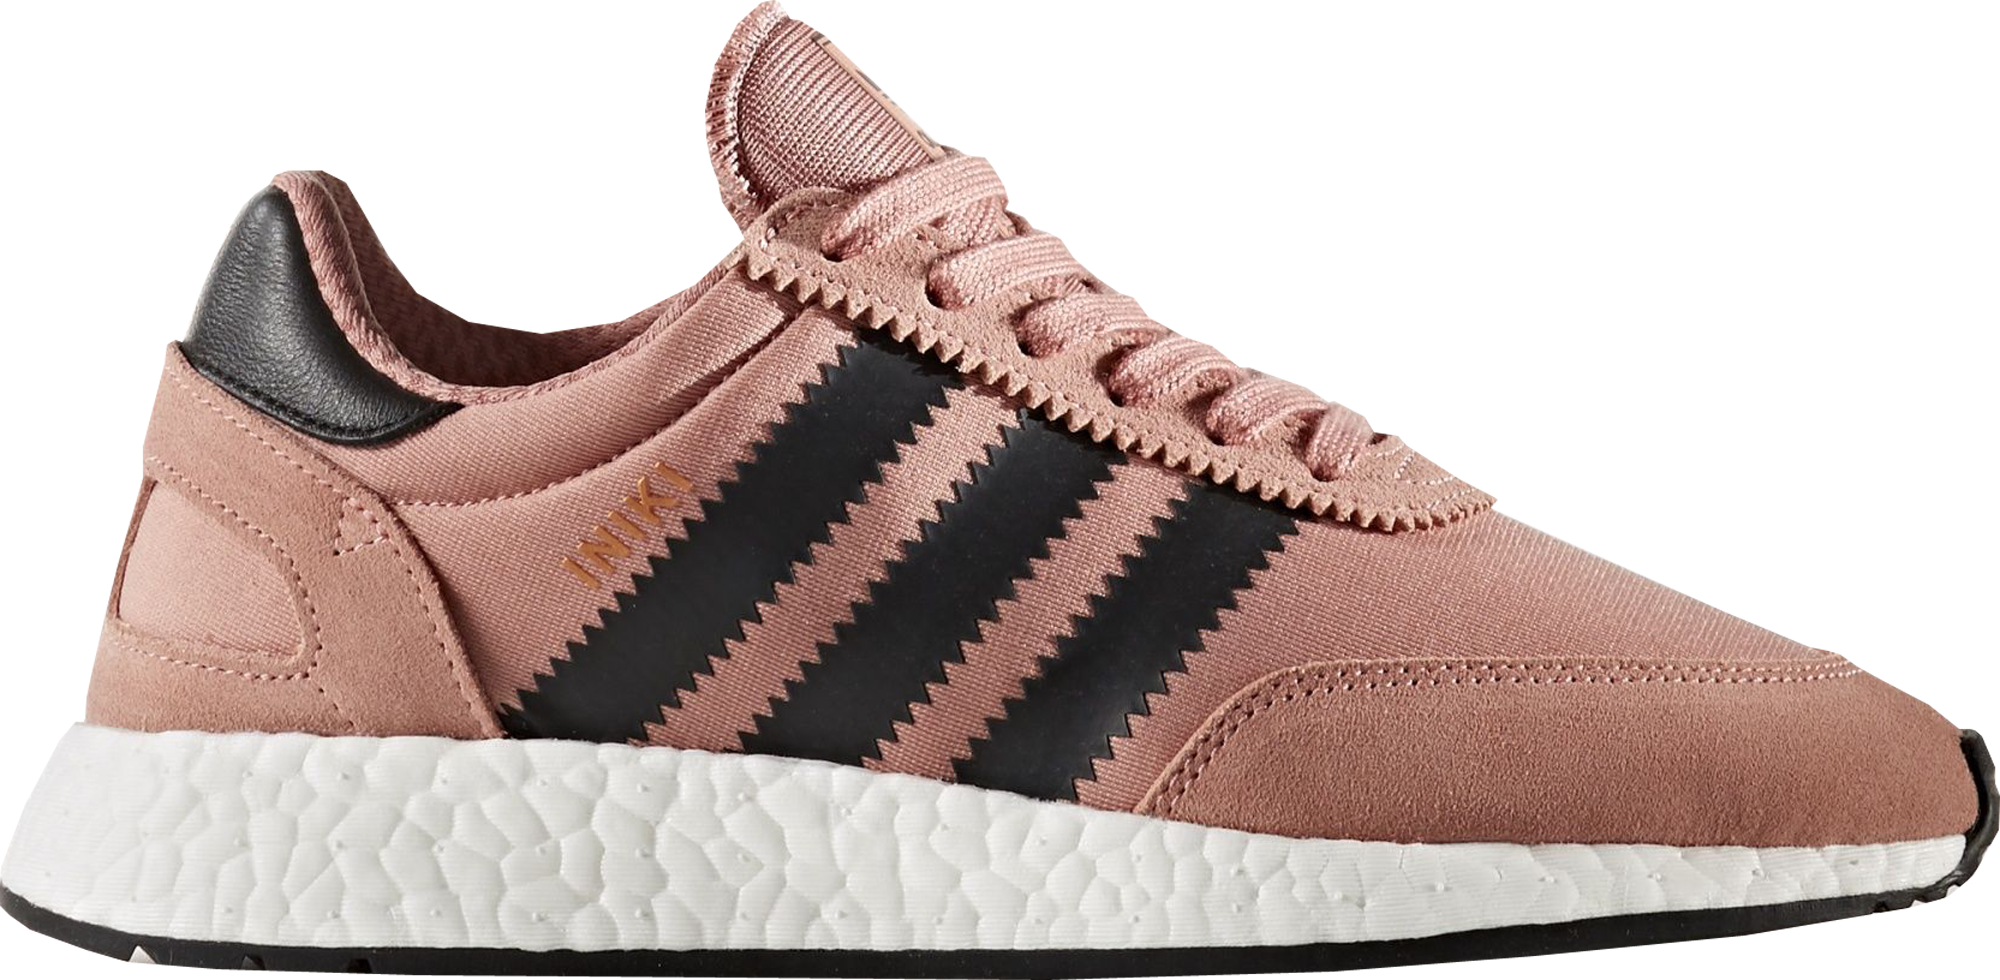 adidas Iniki Runner Raw Pink Core Black (W)